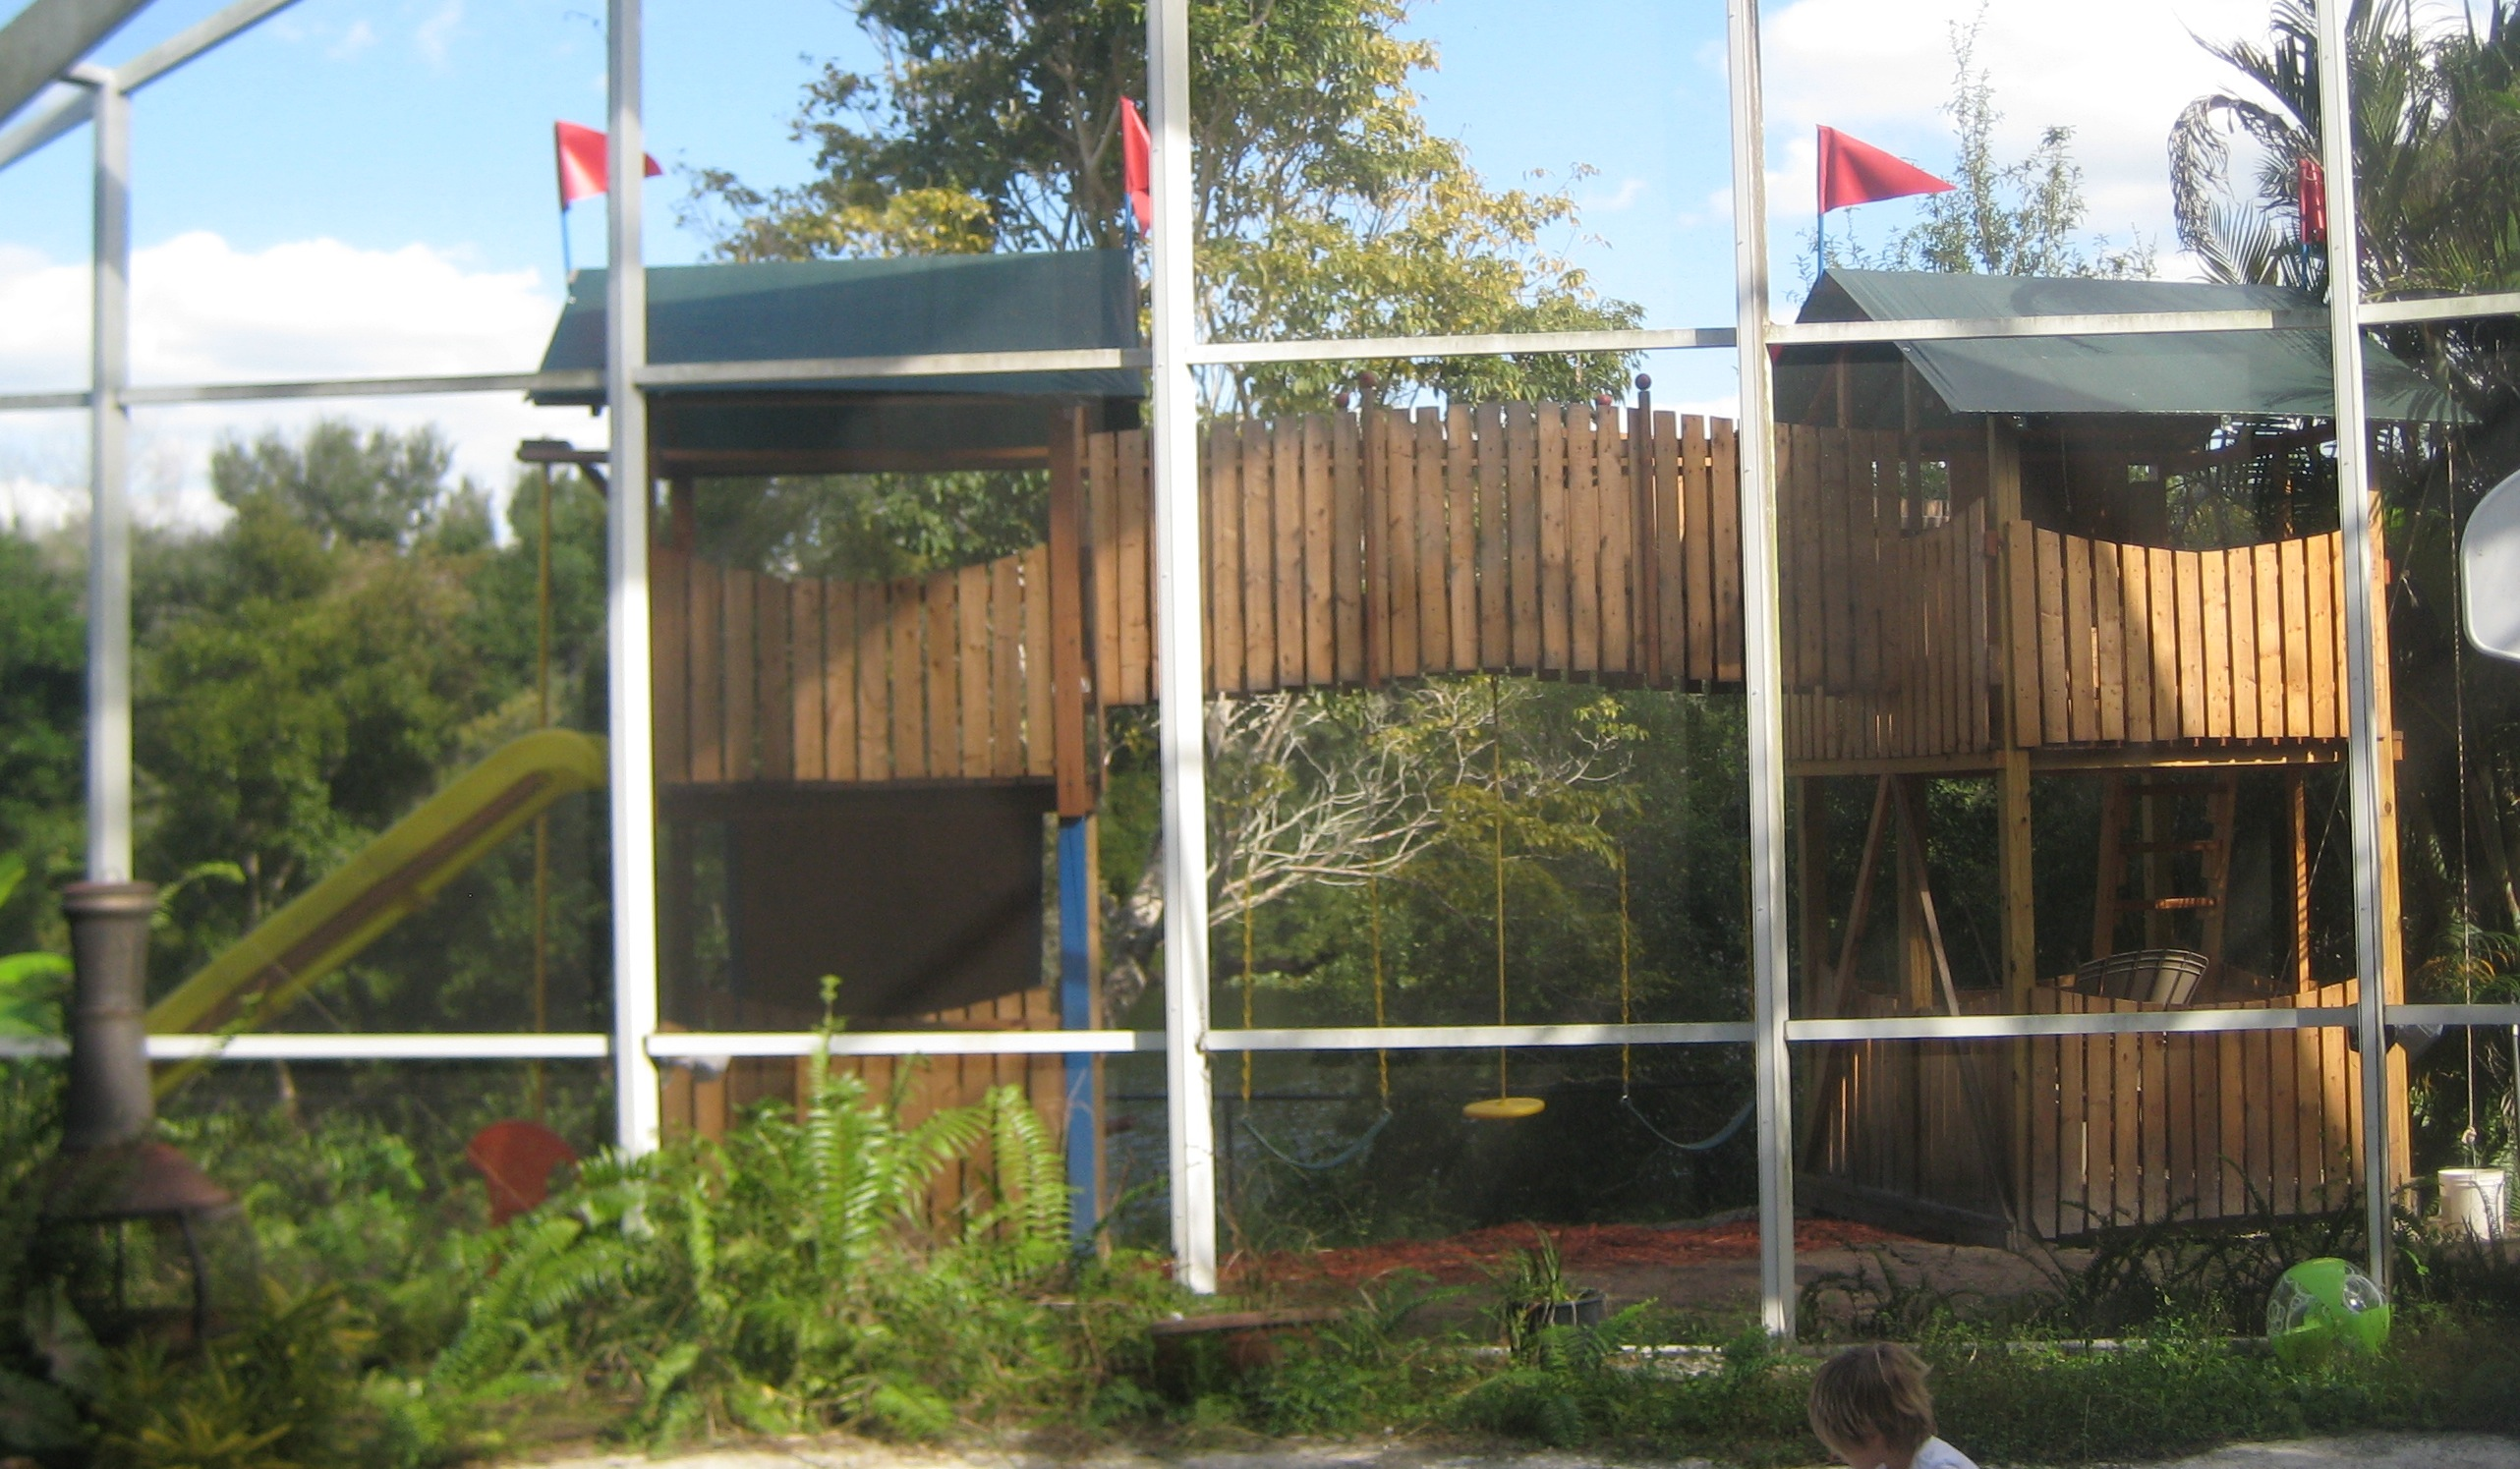 Liam's playset as completed, viewed from inside the backyard arboretum